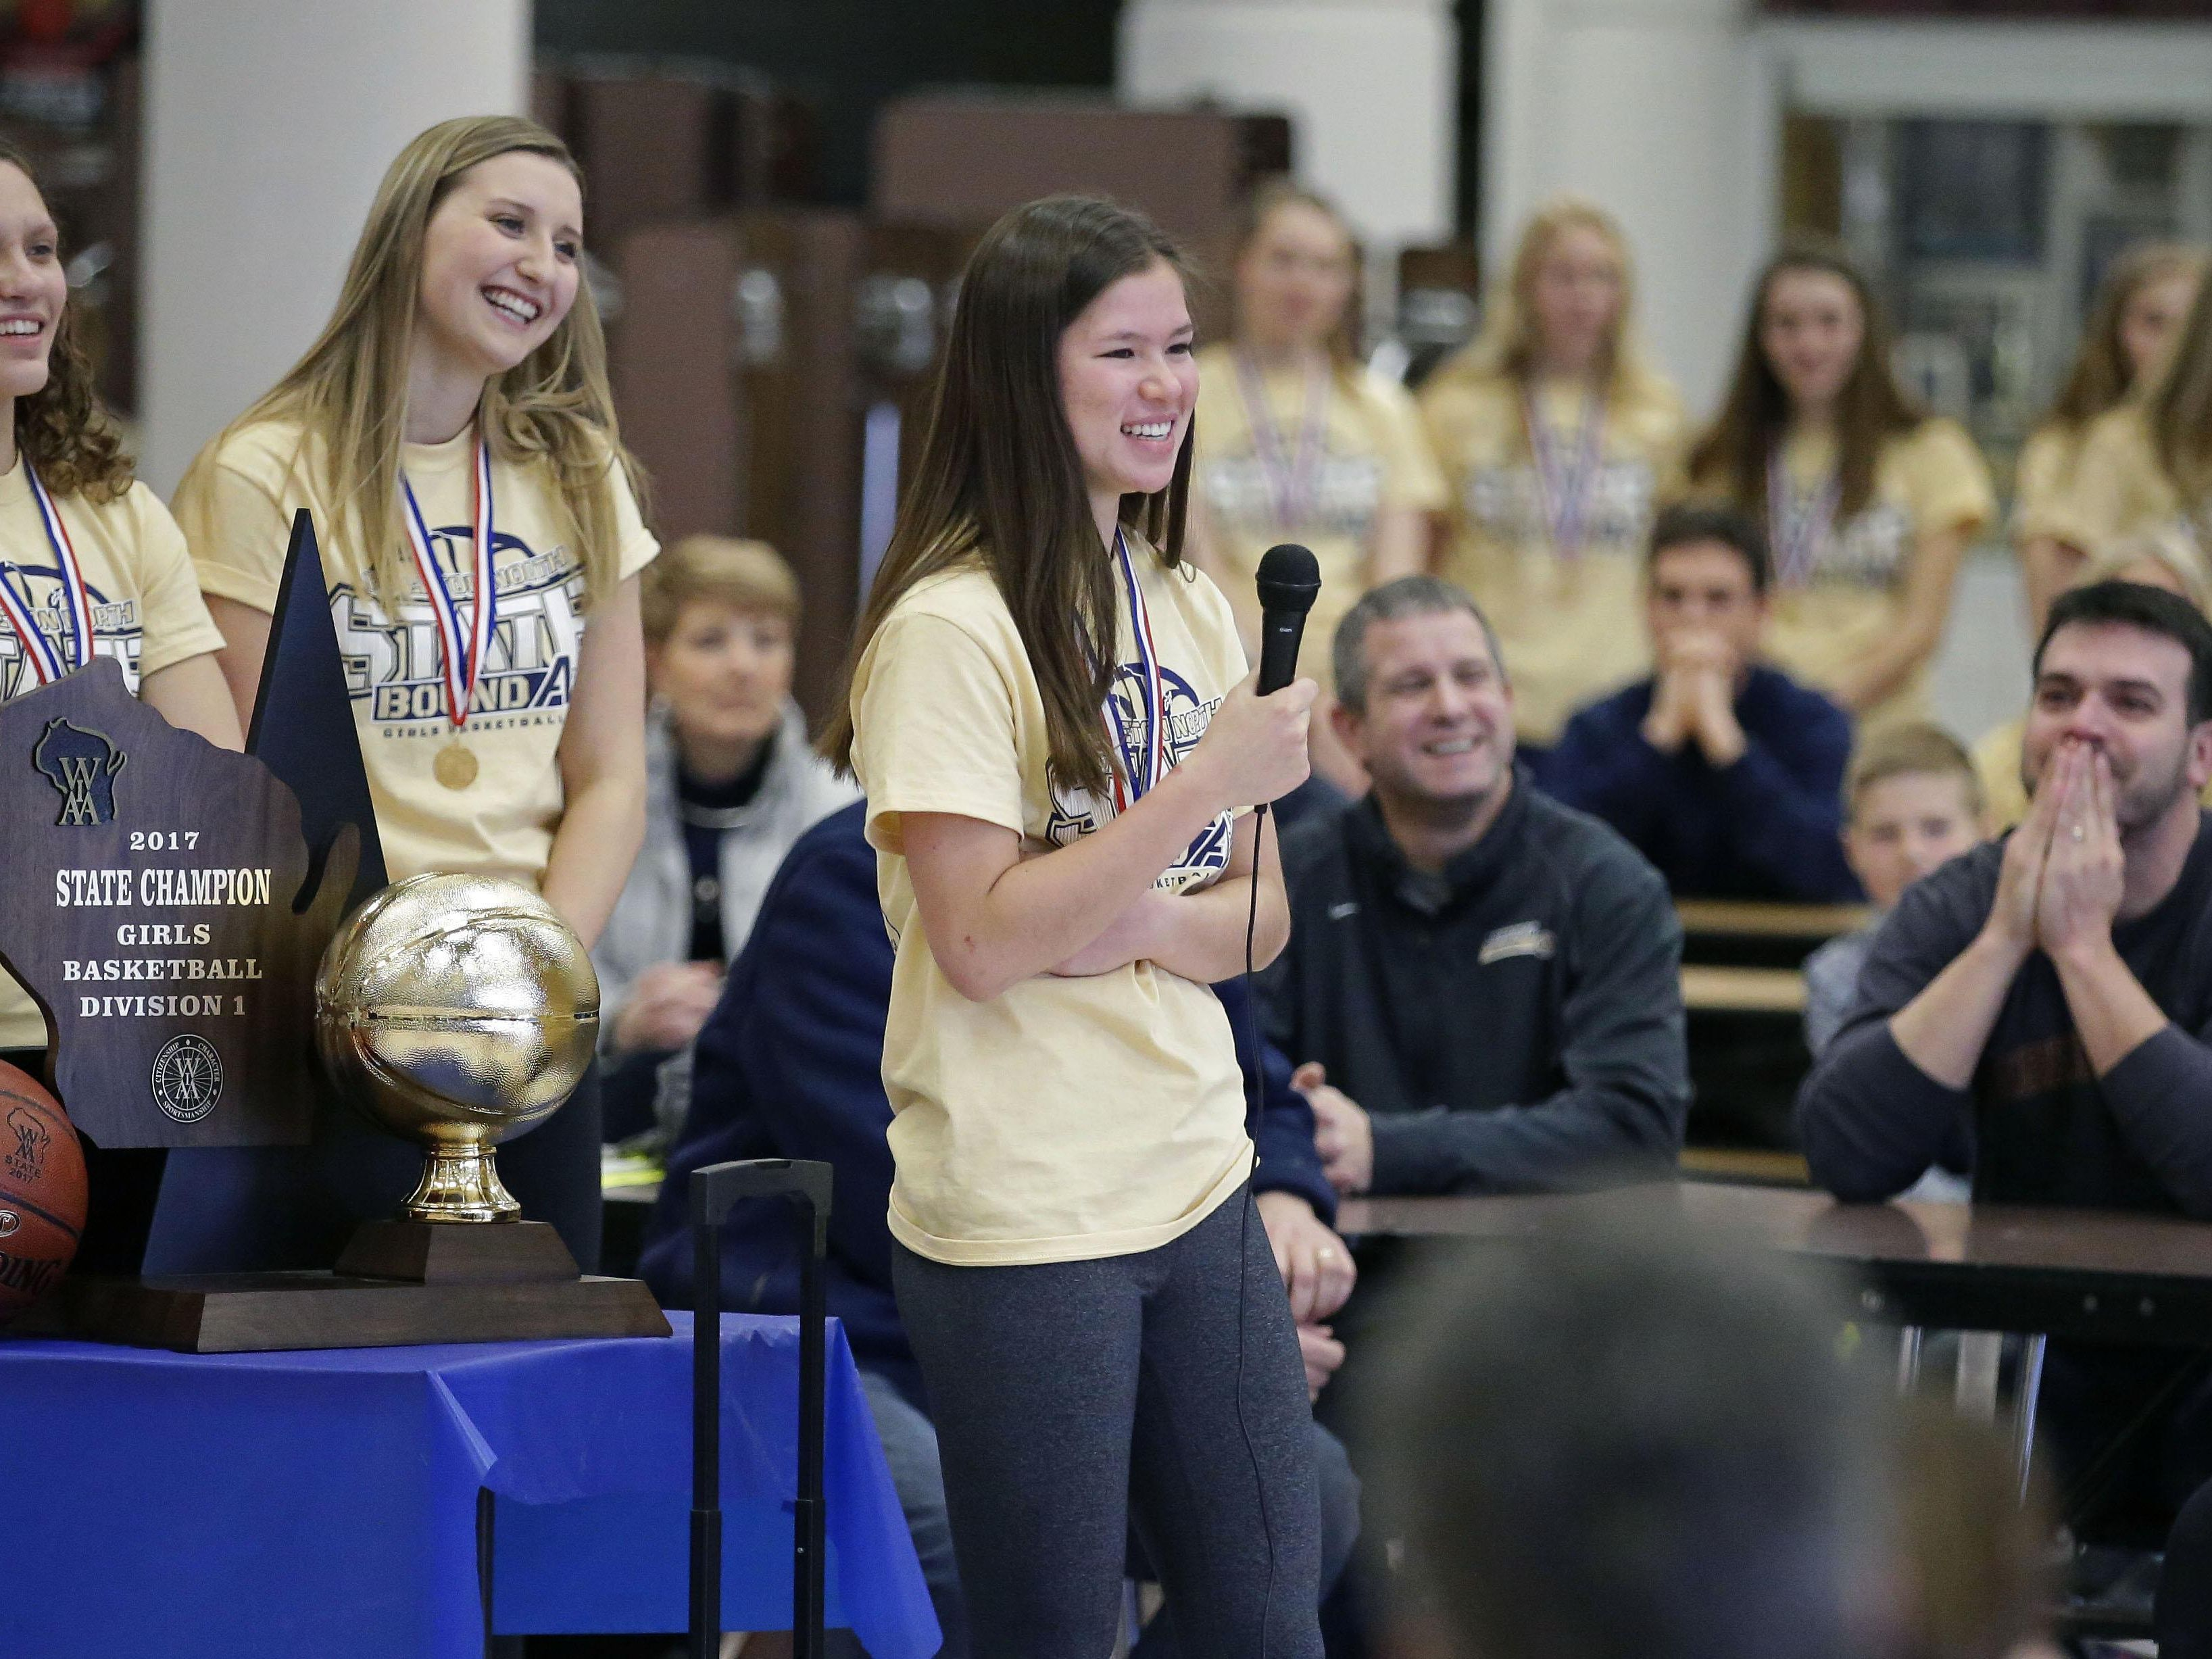 Appleton North players Callie Pohlmann, left, Sydney Levy and Kari Brekke talk with fans as the school holds a state championship celebration for the girls' basketball and cheer teams Sunday.